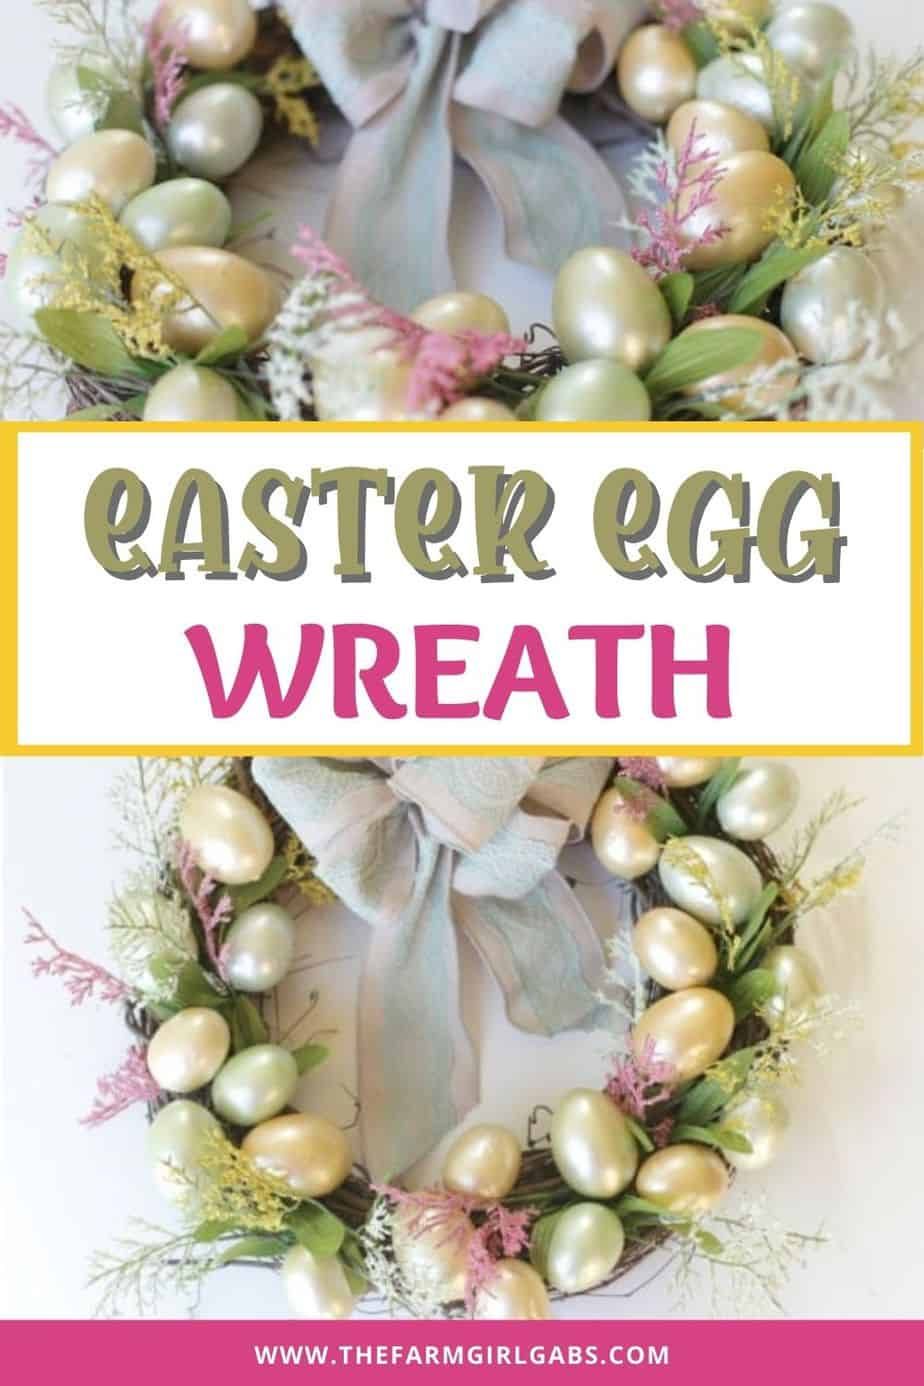 Brighten up your front door with this easy and welcoming DIY Spring Easter Egg Wreath. It's the perfect way to welcome spring. This easy spring craft does not take long to make. All it takes is some artificial easter eggs, a grapevine wreath and a few craft supplies. This tutorial will show you how to make your own wreath for your front door. This is an easy Easter wreath idea.